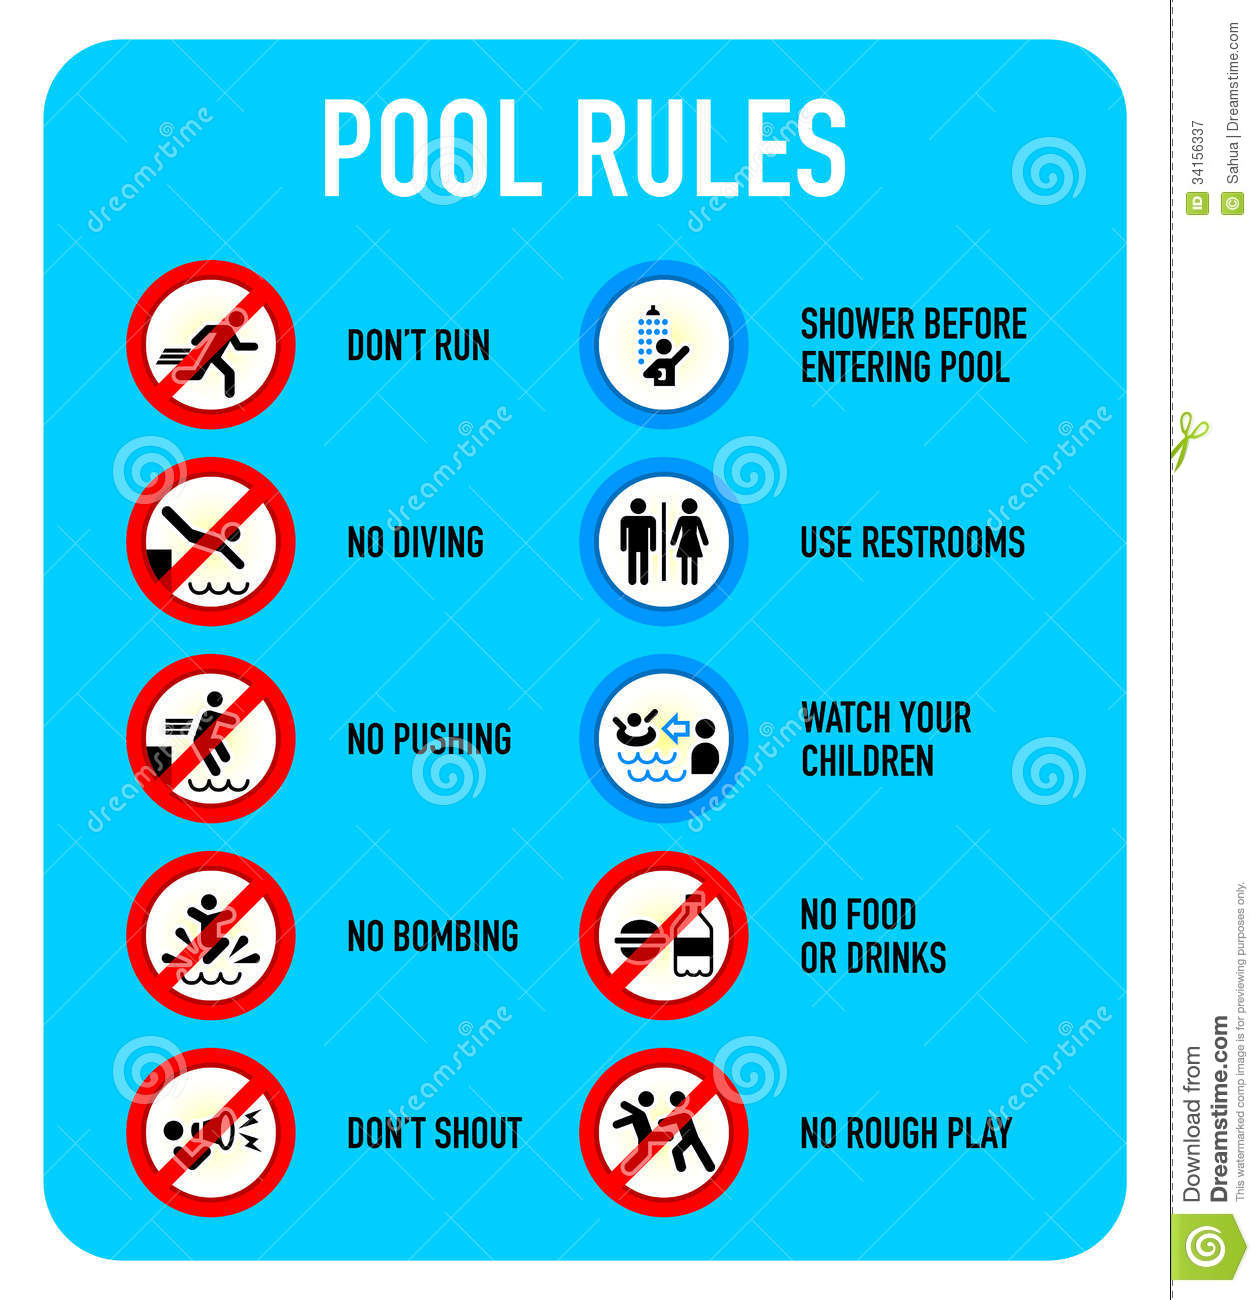 Pool Rules Signs Stock Vector Illustration Of Risk Activity 34156337